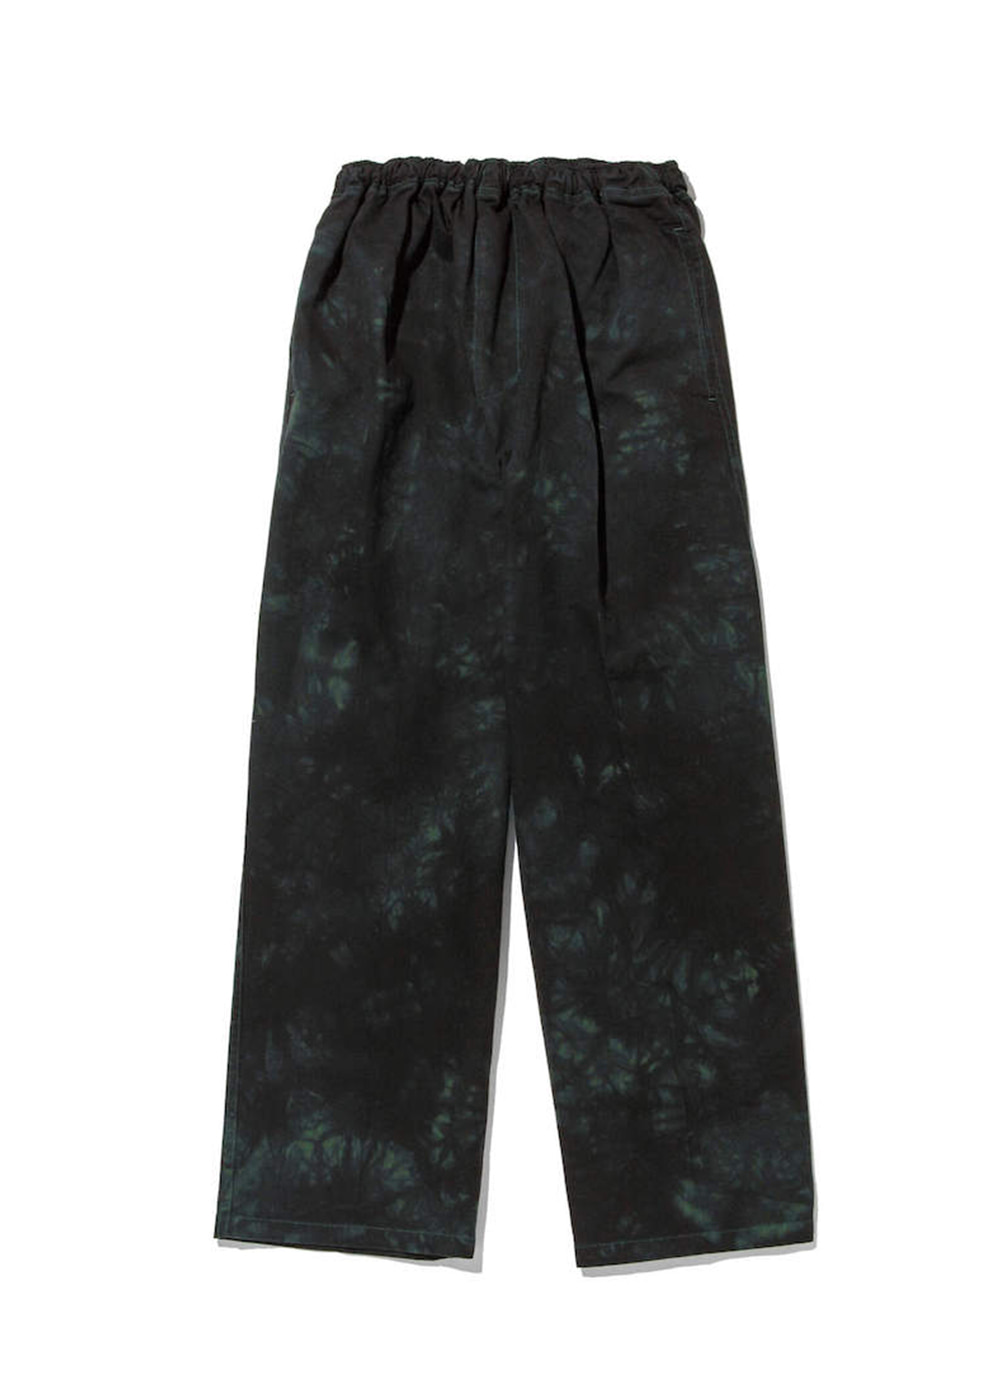 LMC TIE DYE EASY PANTS green